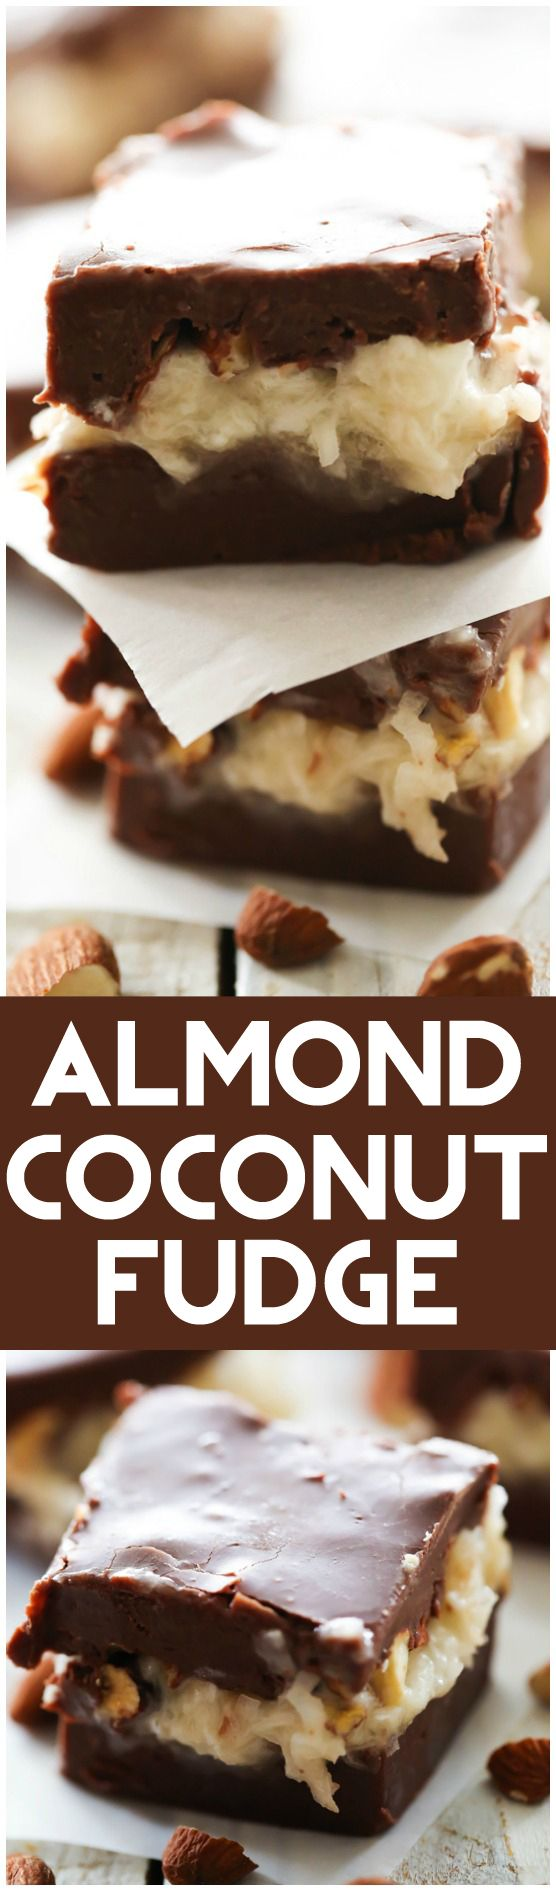 Almond Coconut Fudge... Rich smooth chocolate fudge filled with a delicious creamy coconut almond filling. This is sure to be a huge hit! It tastes like you are biting into a fudge version of Almond Joys!